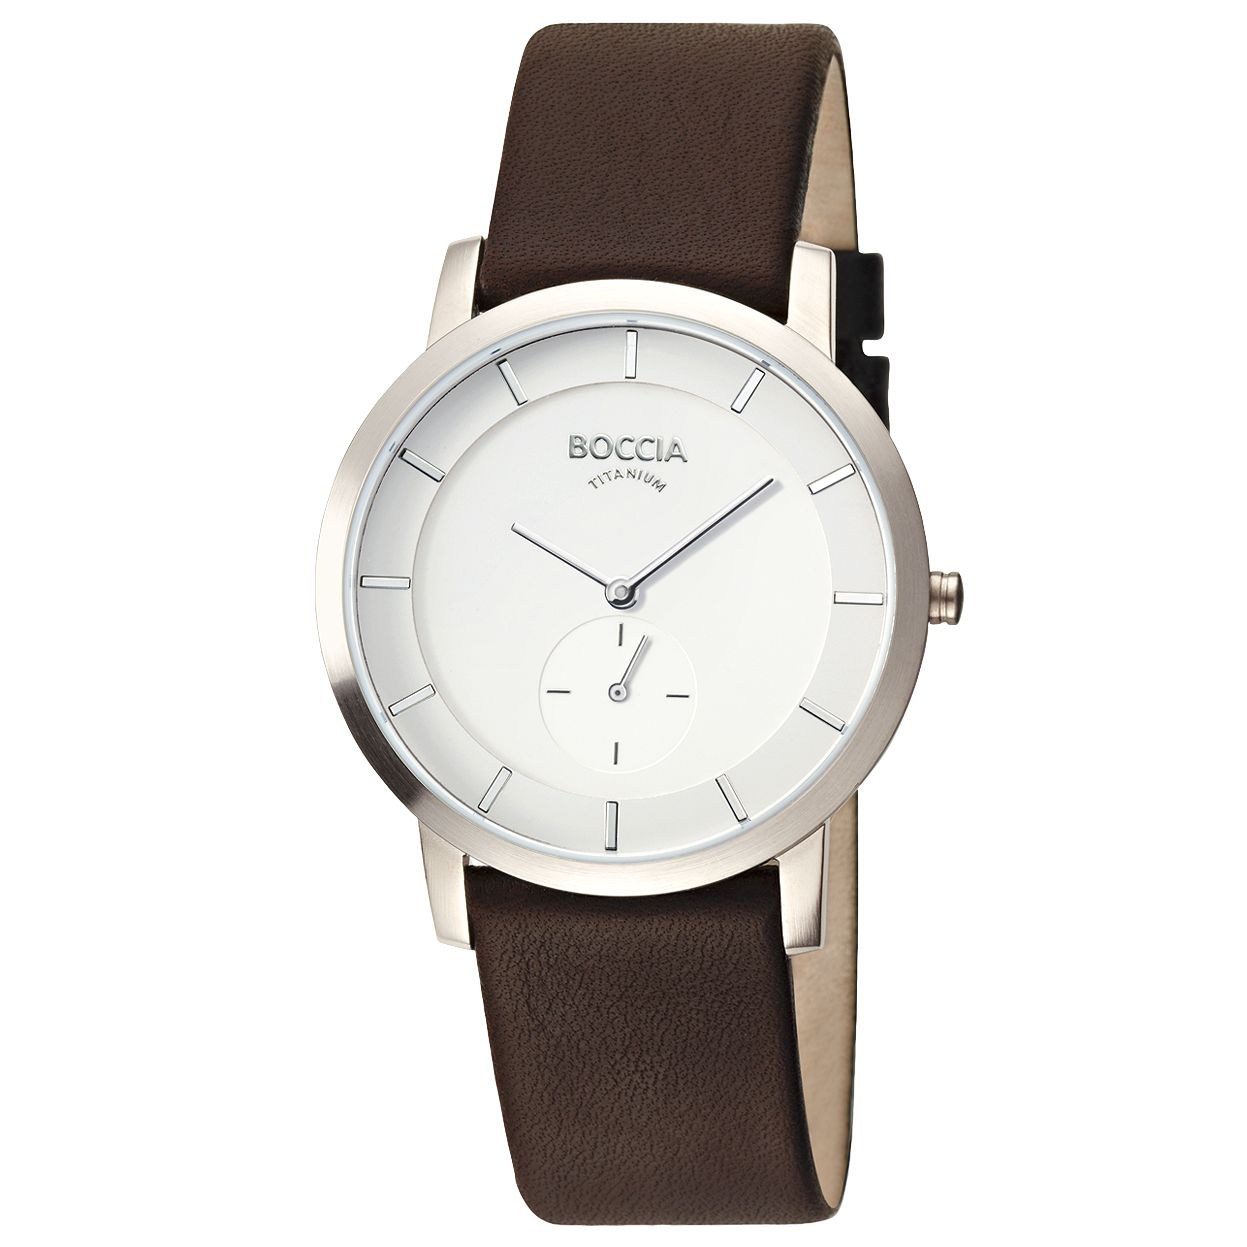 Boccia B3540-01 Men's Round White Dial Titanium Case Black Leather Strap Watch